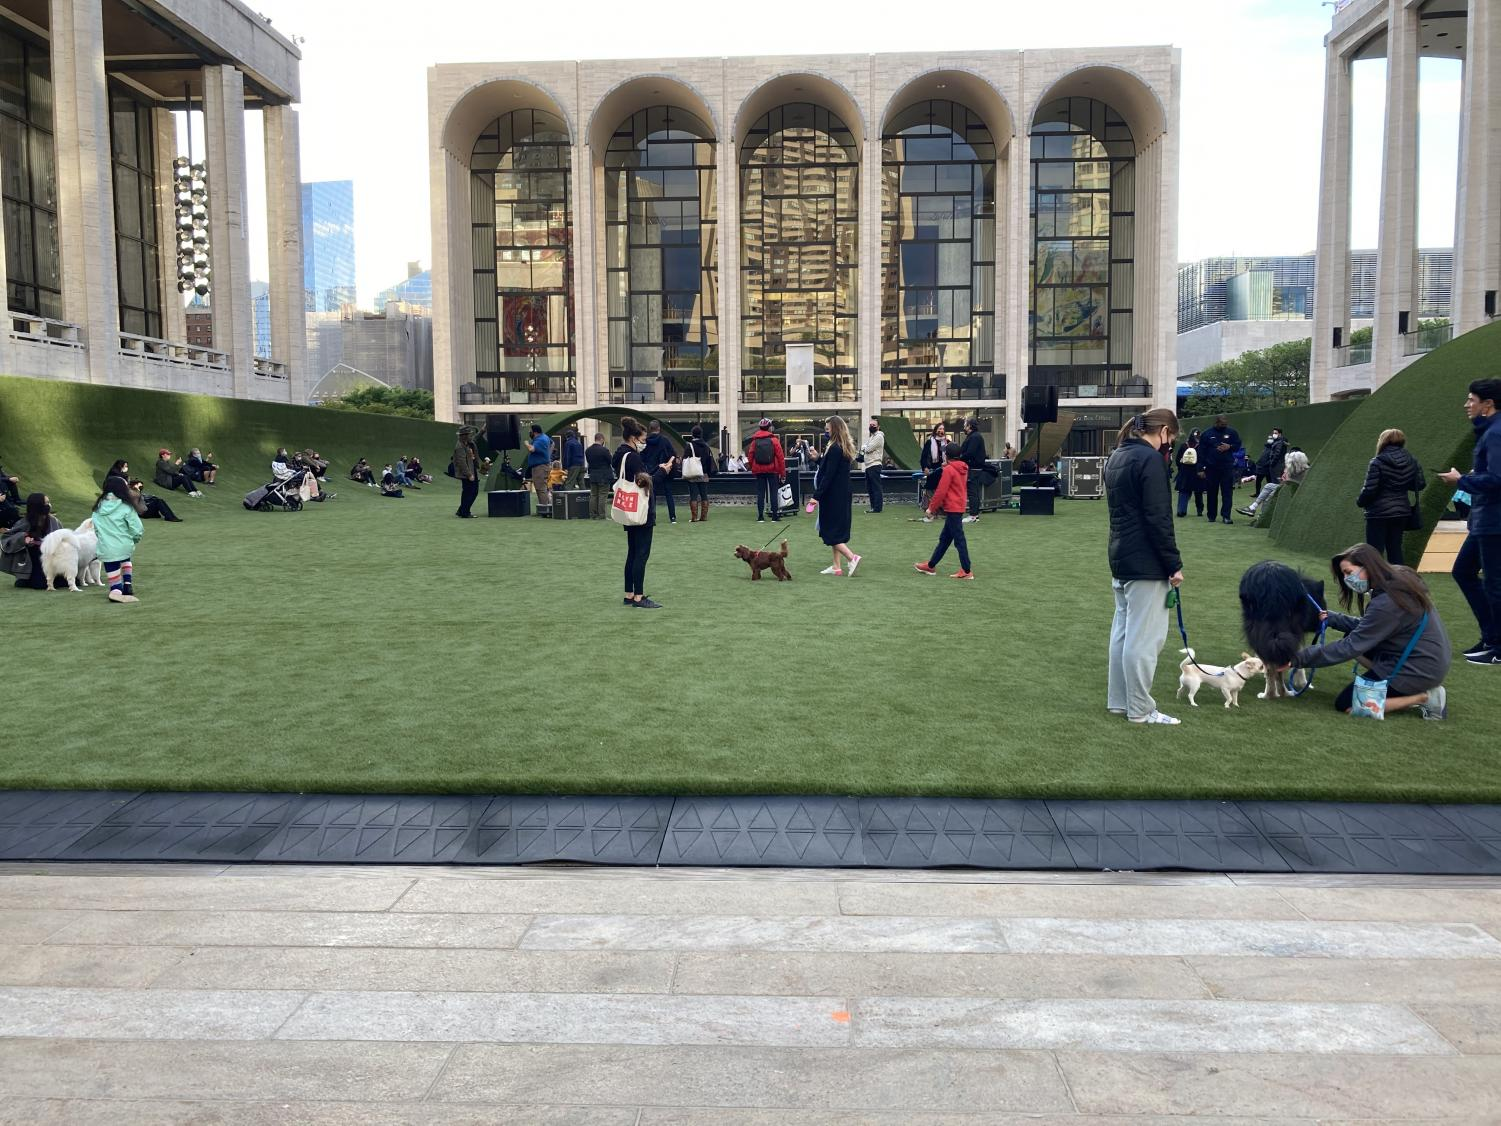 New Yorkers are walking along The GREEN at Lincoln Center with their dogs and children with the Metropolitan Opera House behind them.